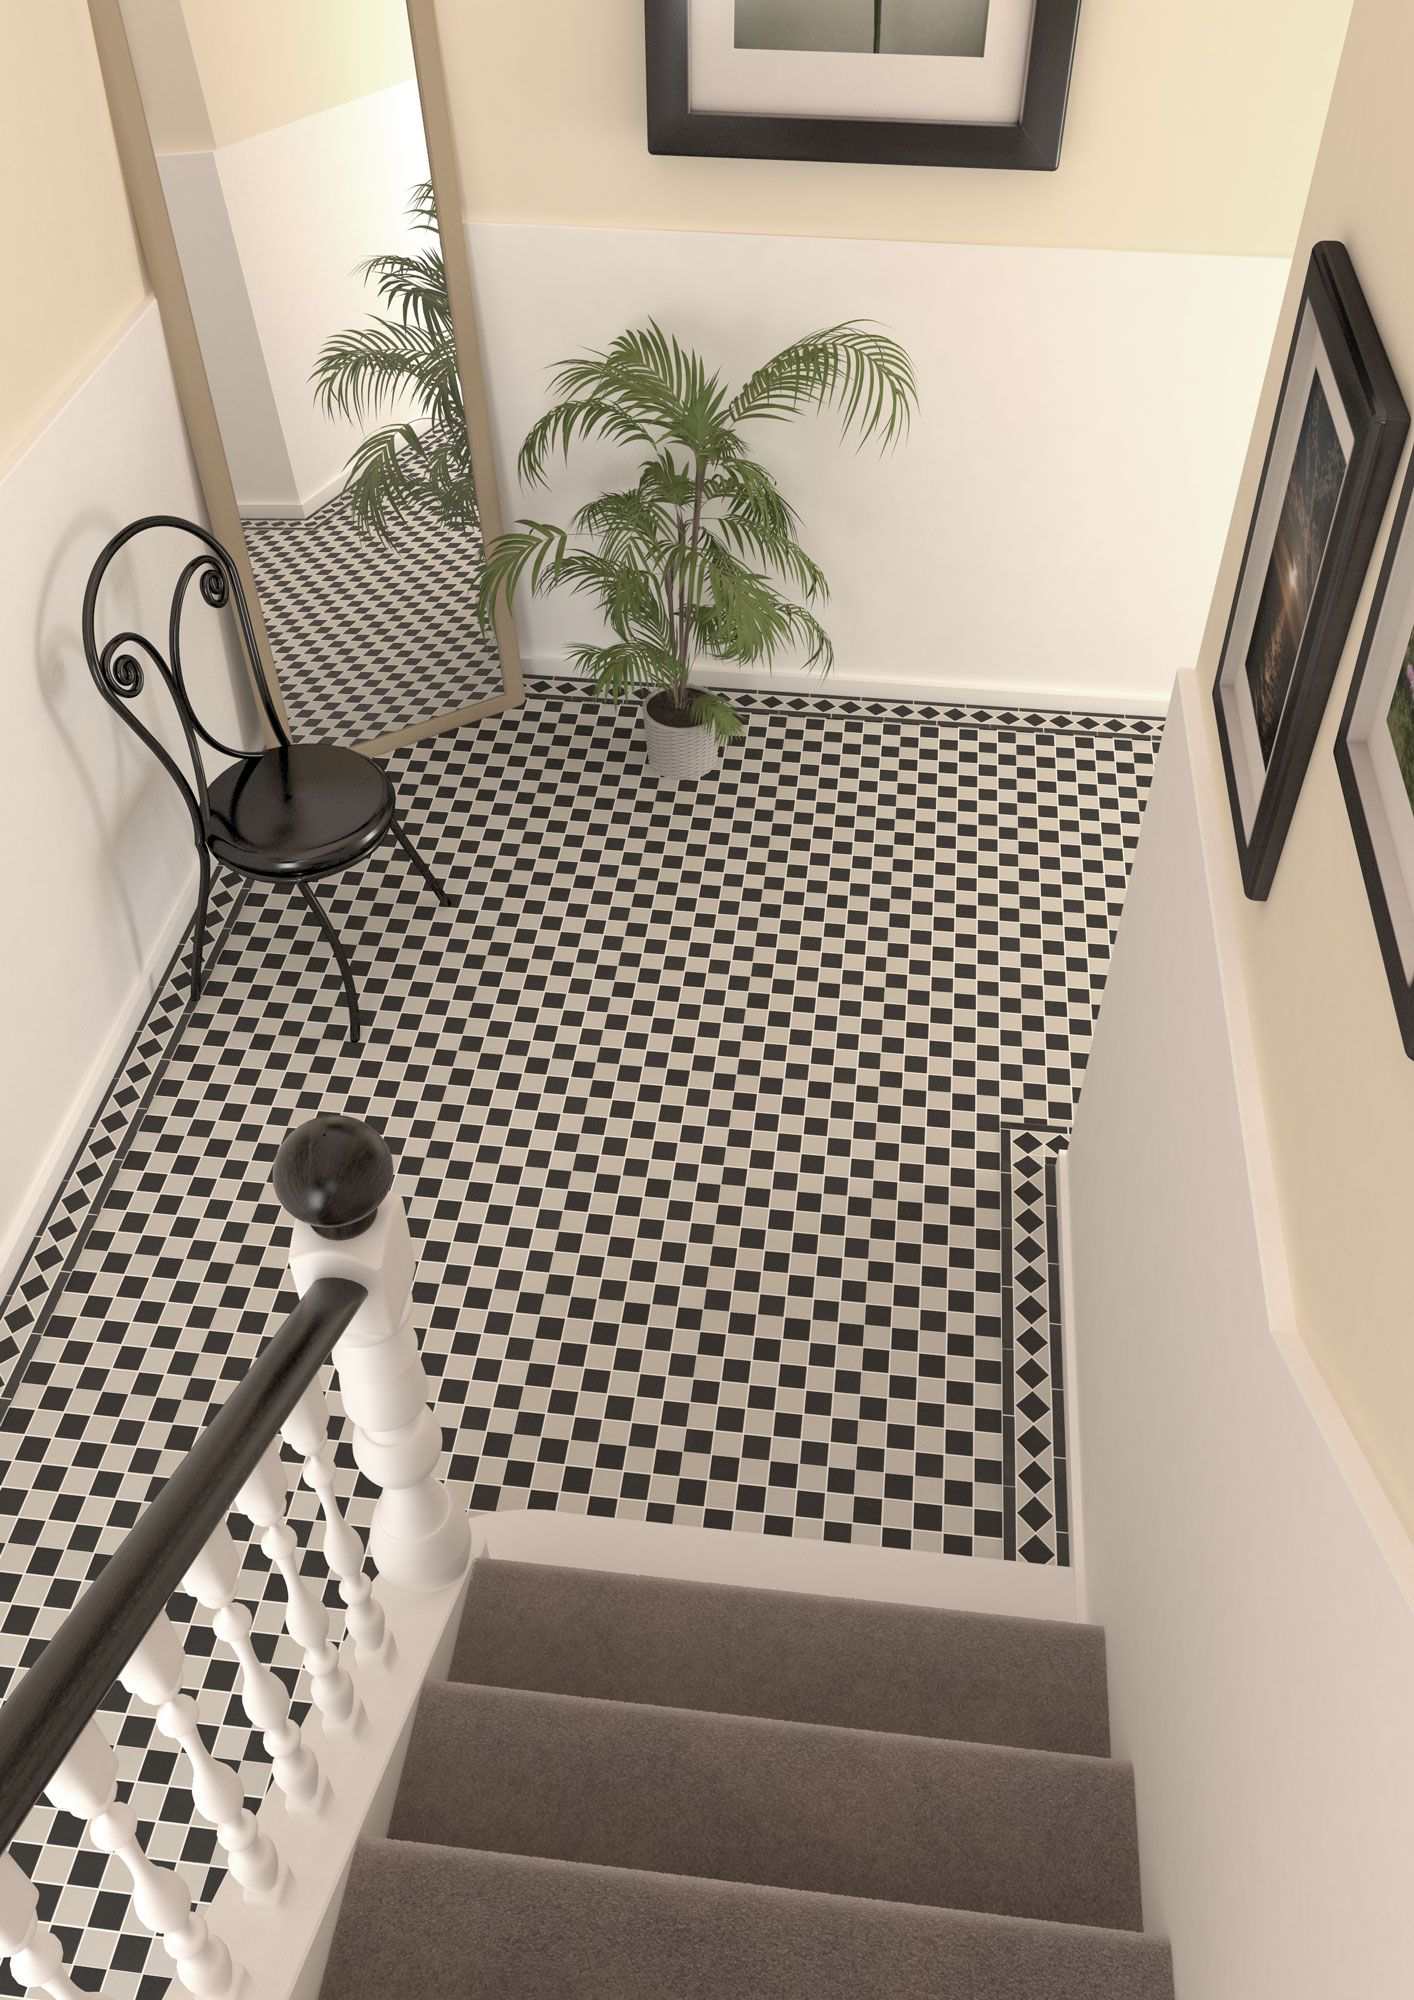 Hallway Floor Solutions To Stop Dirt And Mud In Their